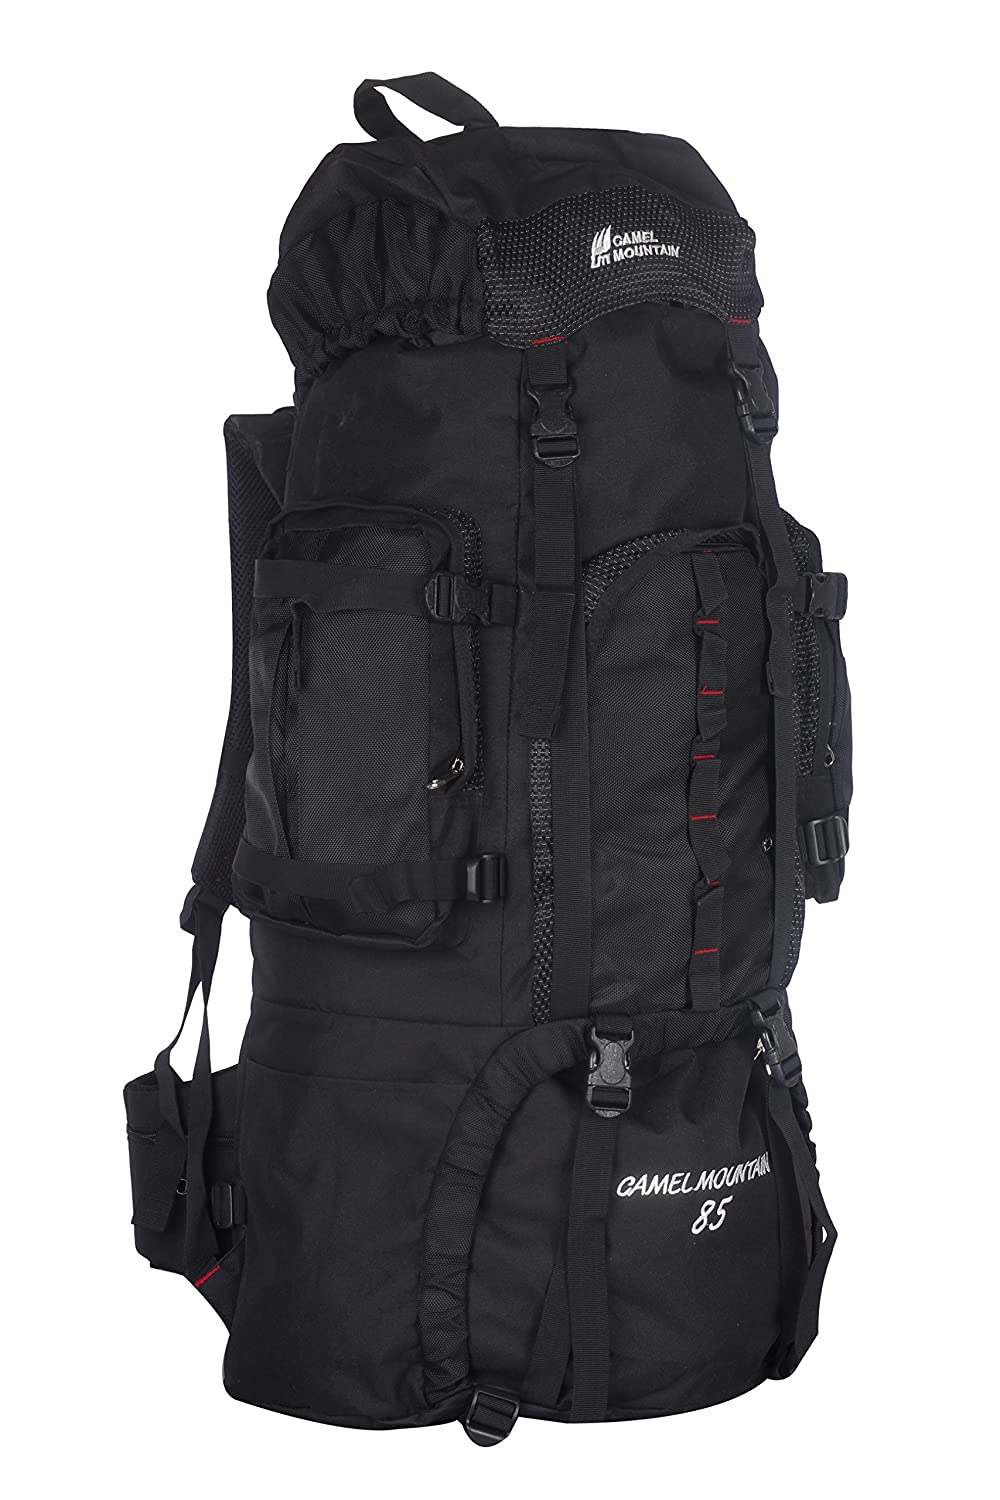 0565564e5c Camel mountain 1022 85litre black backpack: Amazon.in: Sports, Fitness &  Outdoors